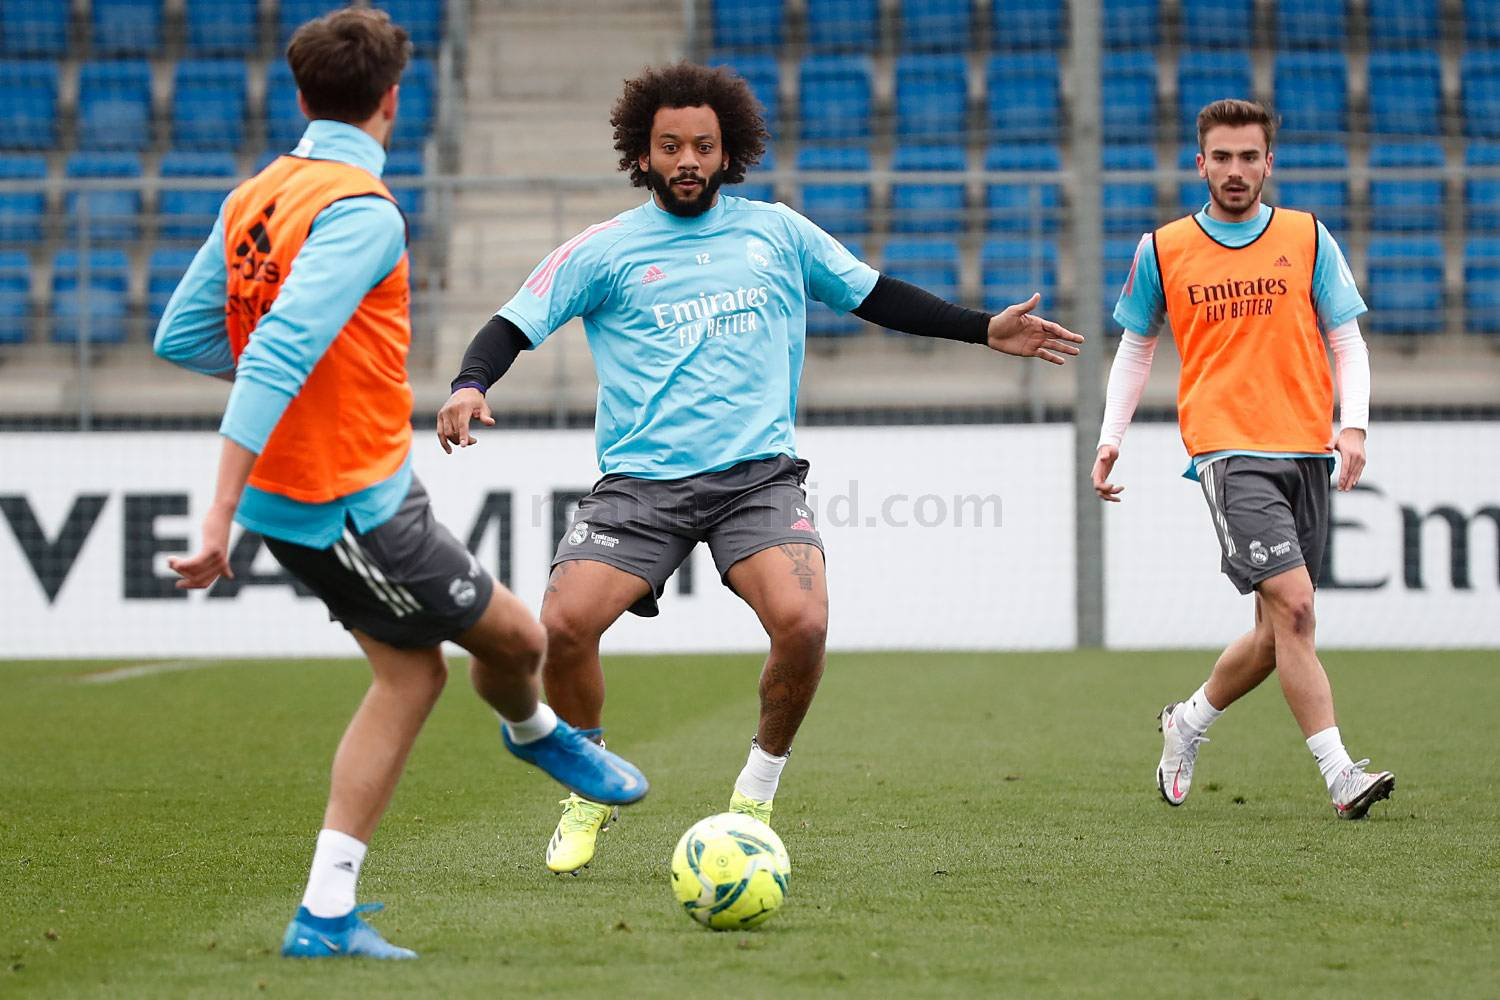 Entrenamiento del Real Madrid  - 11-04-2021